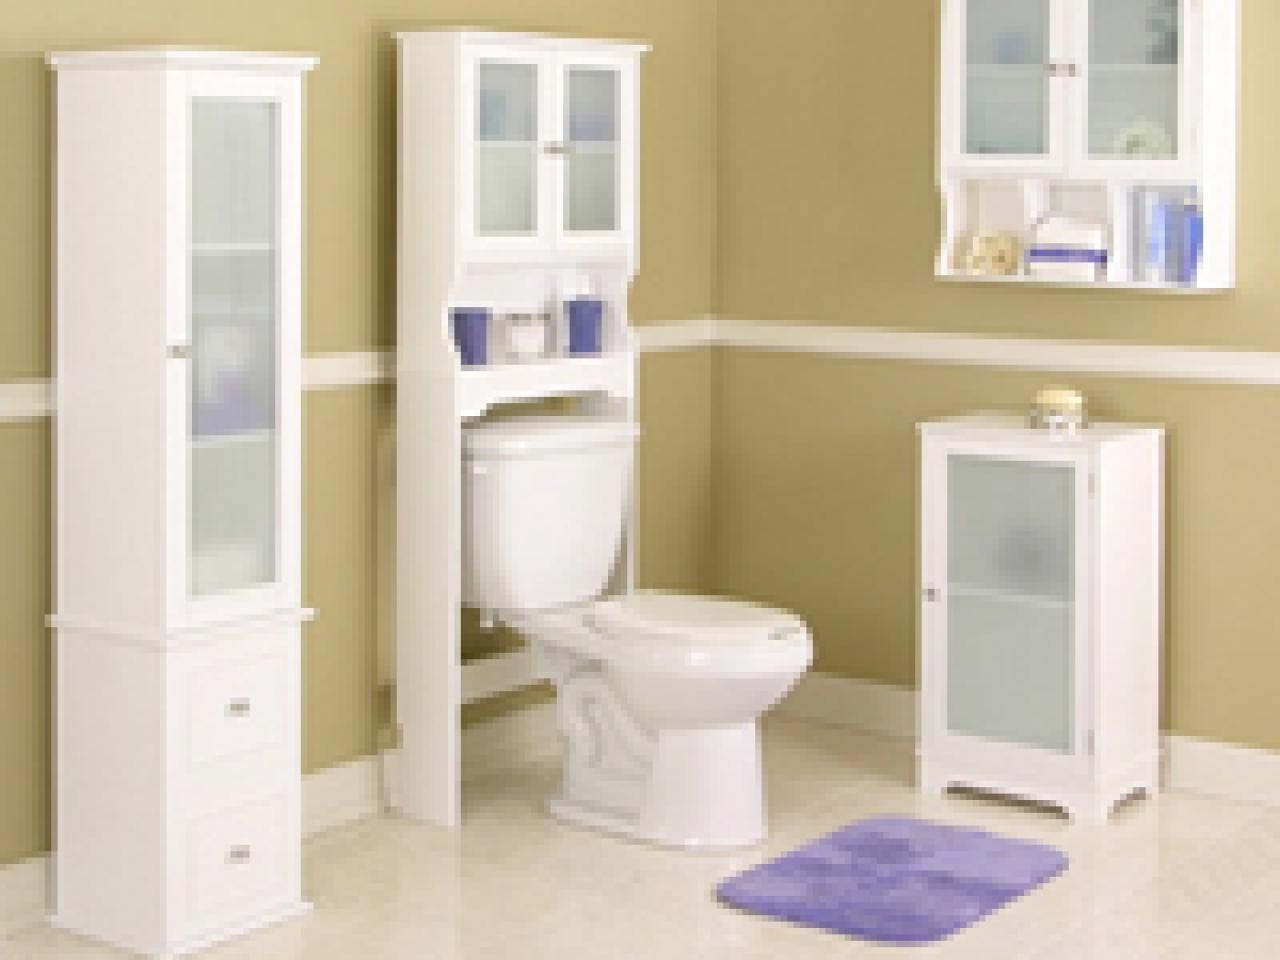 Best Images About B A T H R O O M S On Pinterest Vanities Kmart